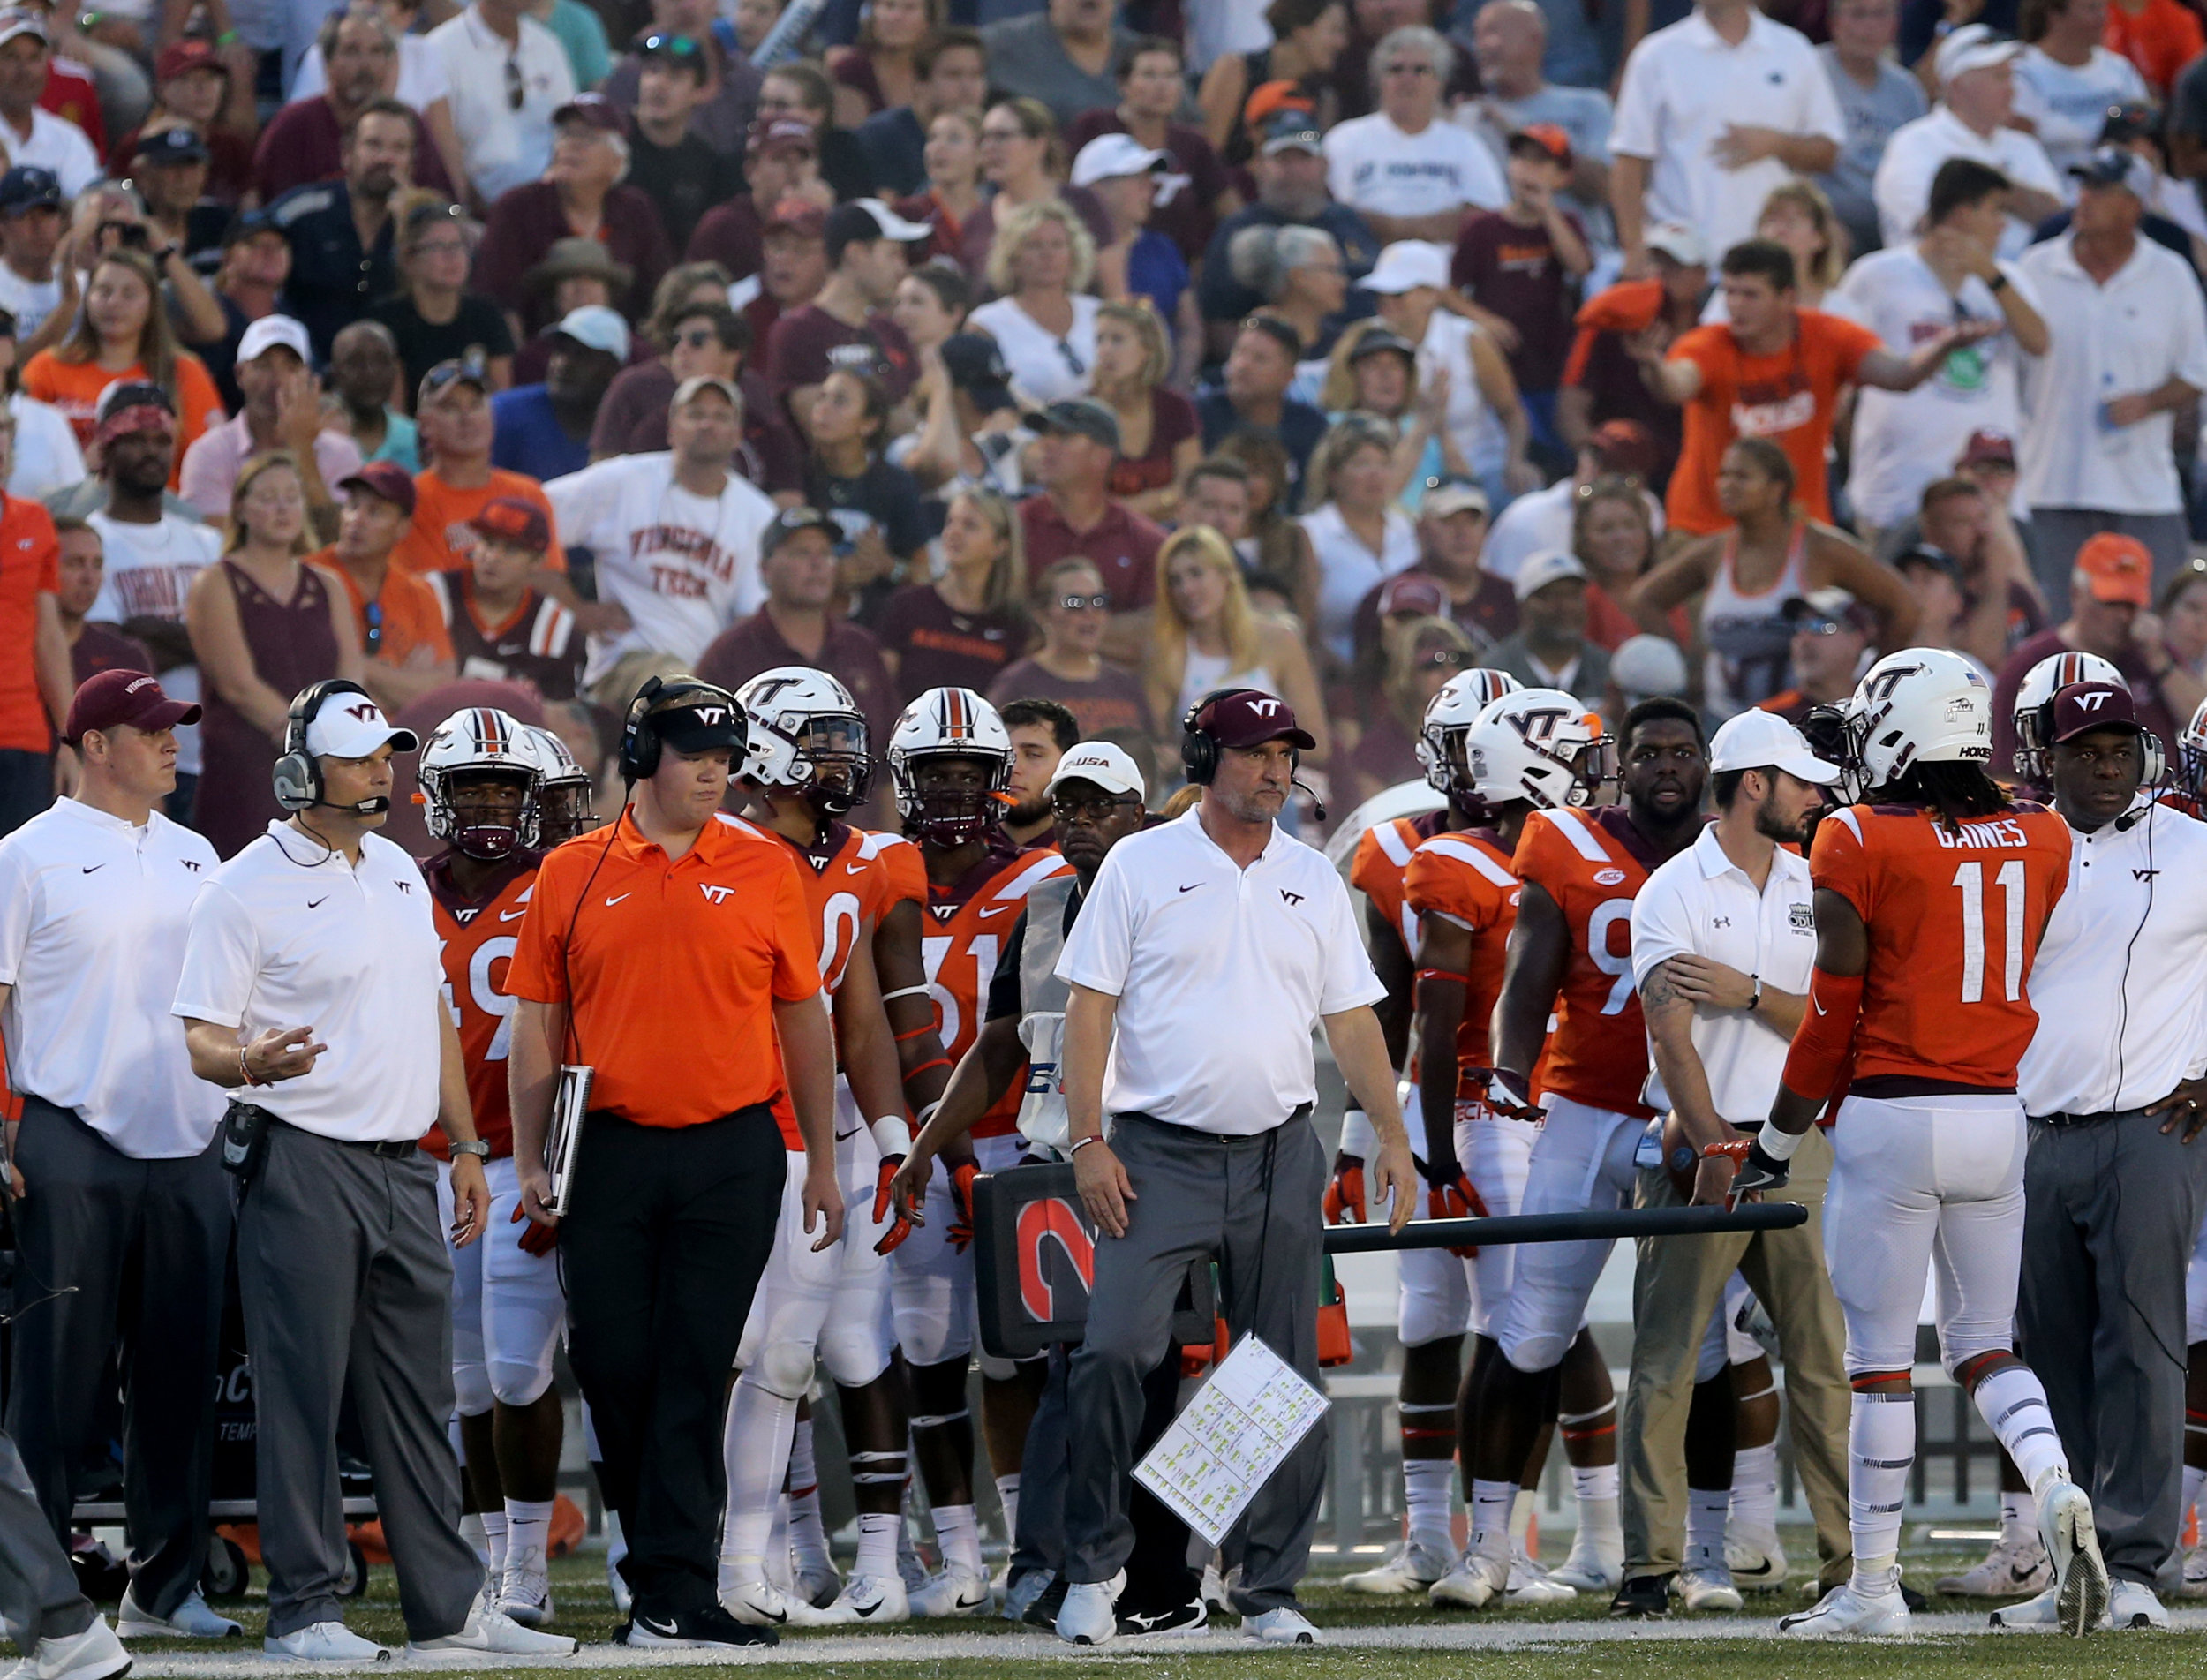 Virginia Tech defensive coordinator Bud Foster looks on in a game against Old Dominion during the second half of an NCAA college football game Saturday, Sept. 22, 2018, in Norfolk, Va. Old Dominion won 49-35. (AP Photo/Jason Hirschfeld)